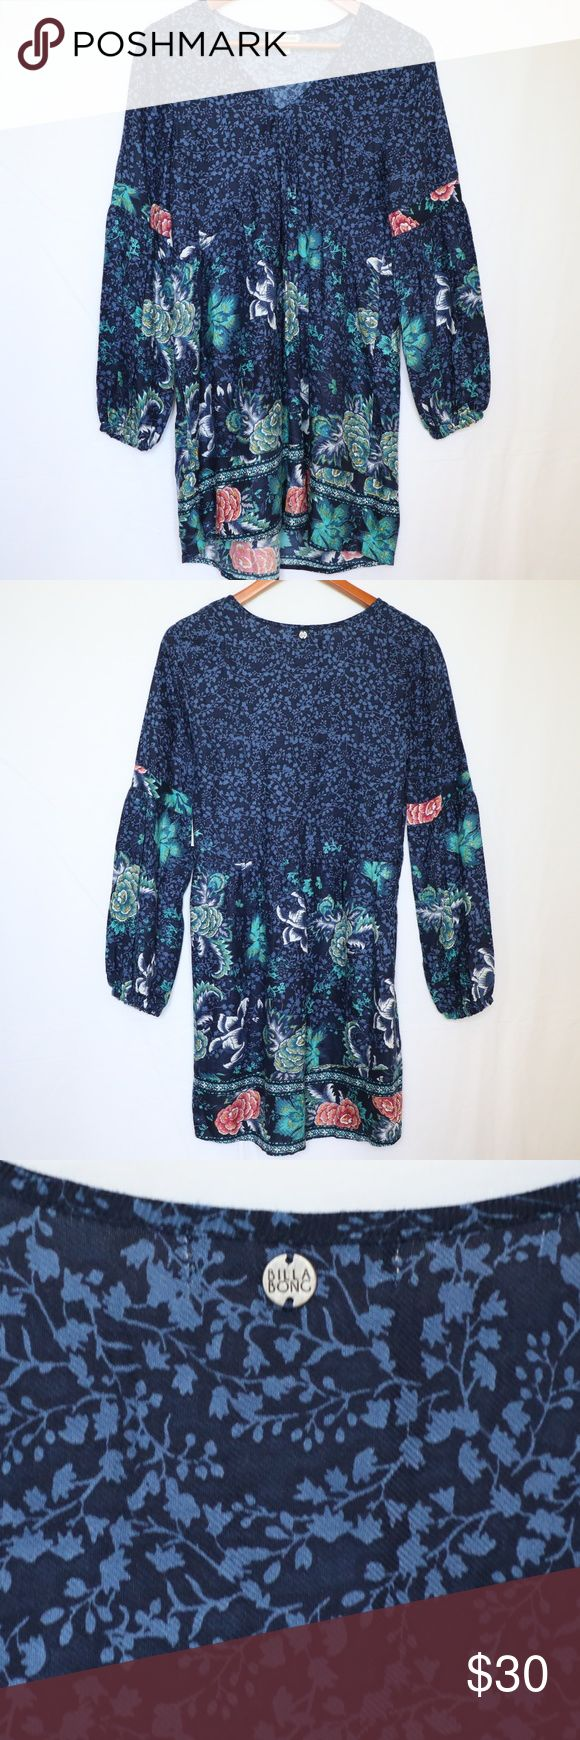 "Billabong Blue Floral Long Sleeve Tunic Dress XS Billabong Junior's Clearest Melody Long Sleeve Printed Dress XS NEW $55 Details Paisley scrolls in rich henna hues cover a romantic dress fitted with a loose,  gently gathered Empire waist and billowy drop-shoulder sleeves cinched at the wrists. - V-neck - Long sleeves with elastic cuffs - Allover print - Pleated skirt  Measurements taken with garment flat on table. Armpit to armpit: 16"" Sleeves: 24.5"" Length: 33"" Billabong Dresses"